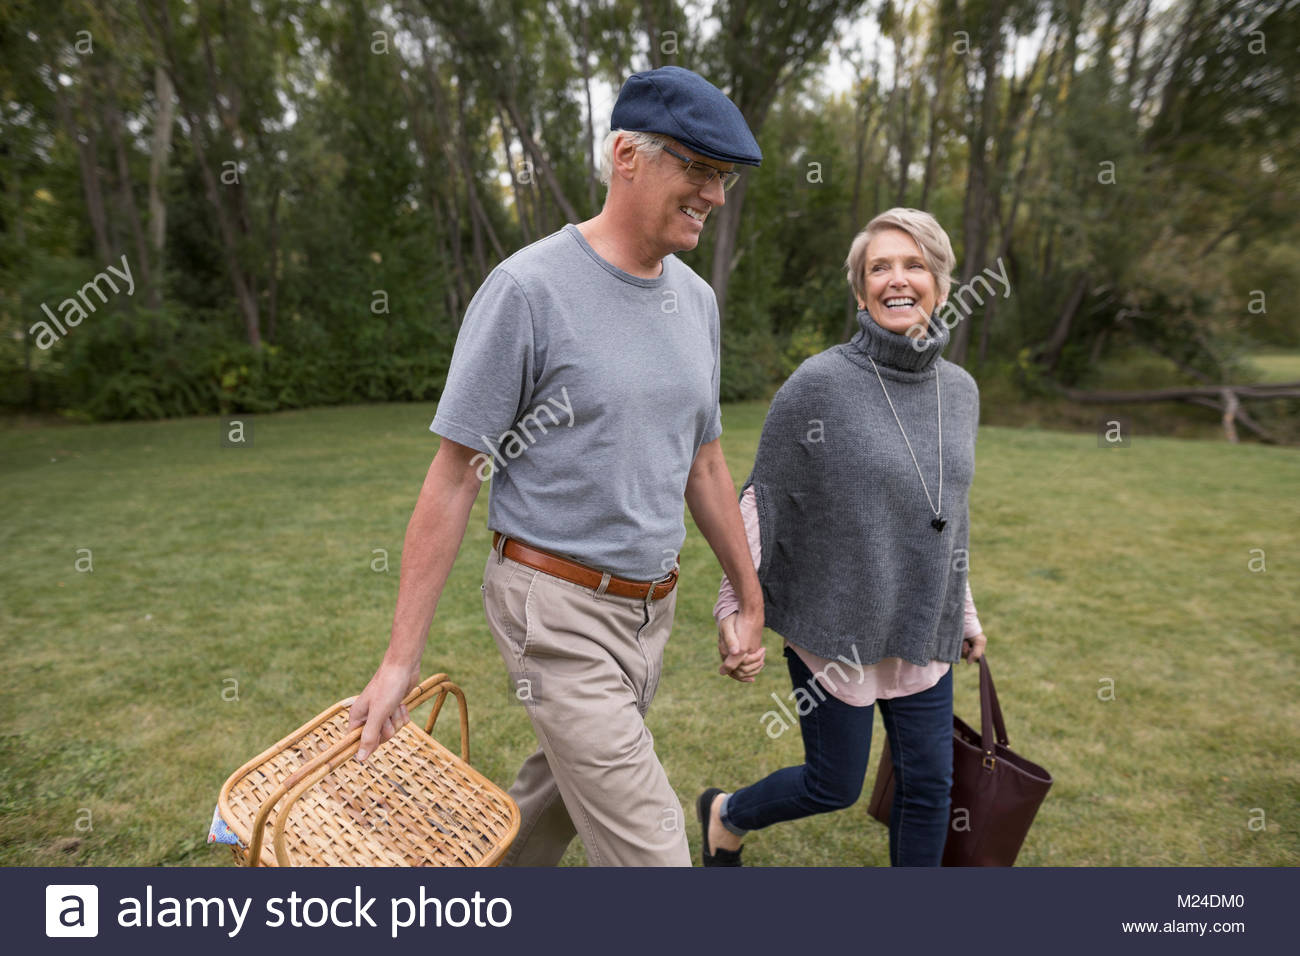 Smiling senior couple walking and holding hands, carrying picnic basket in park - Stock Image